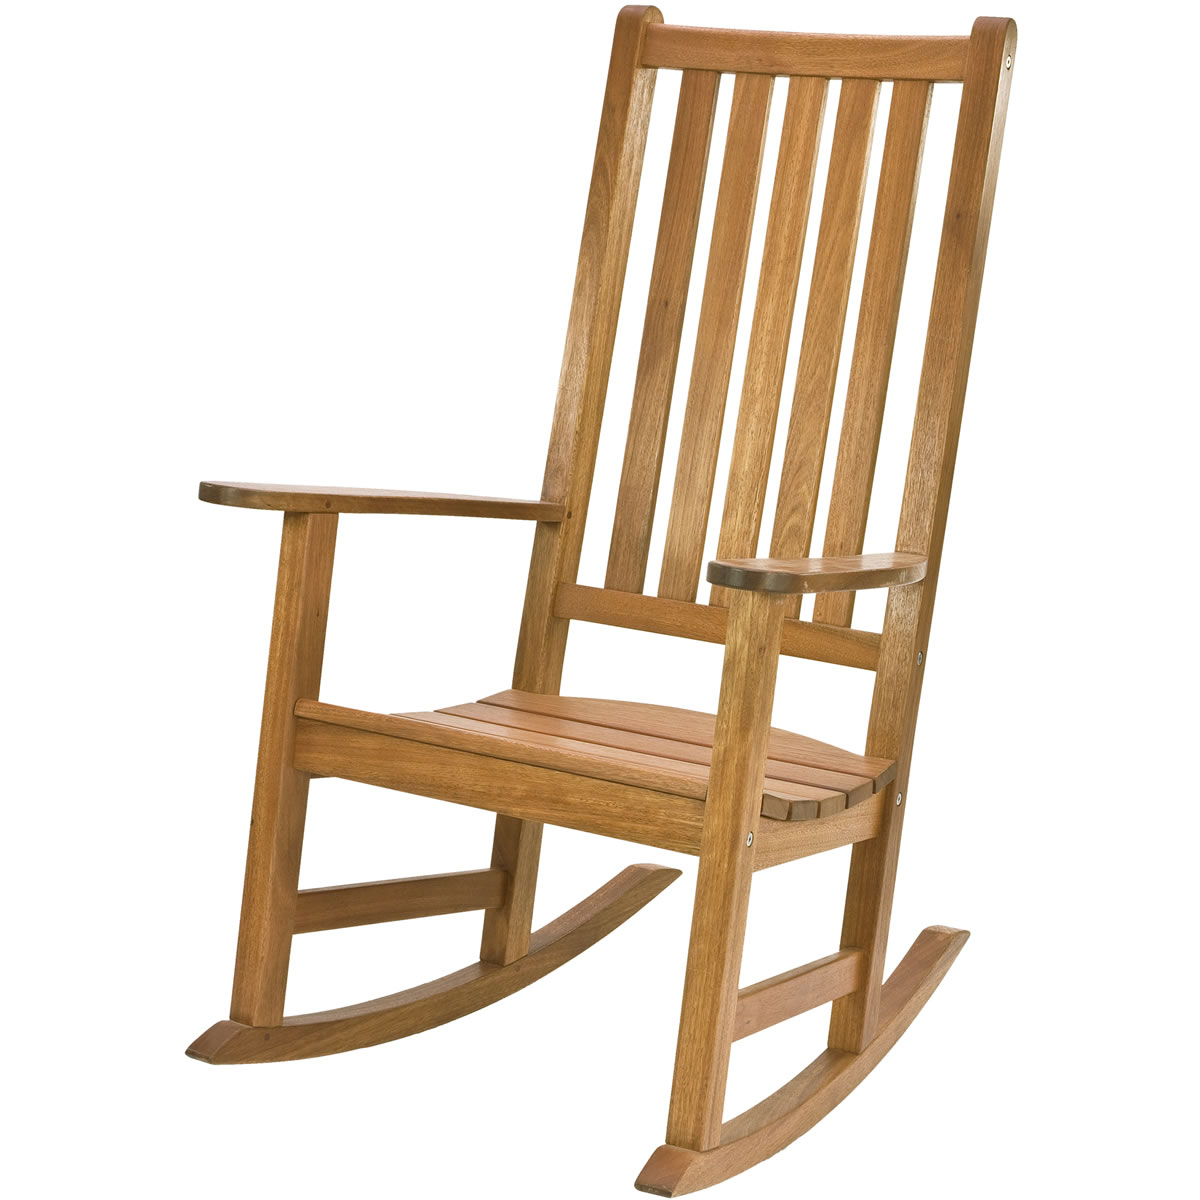 Extra image of Alexander Rose FSC Cornis Rocking Chair